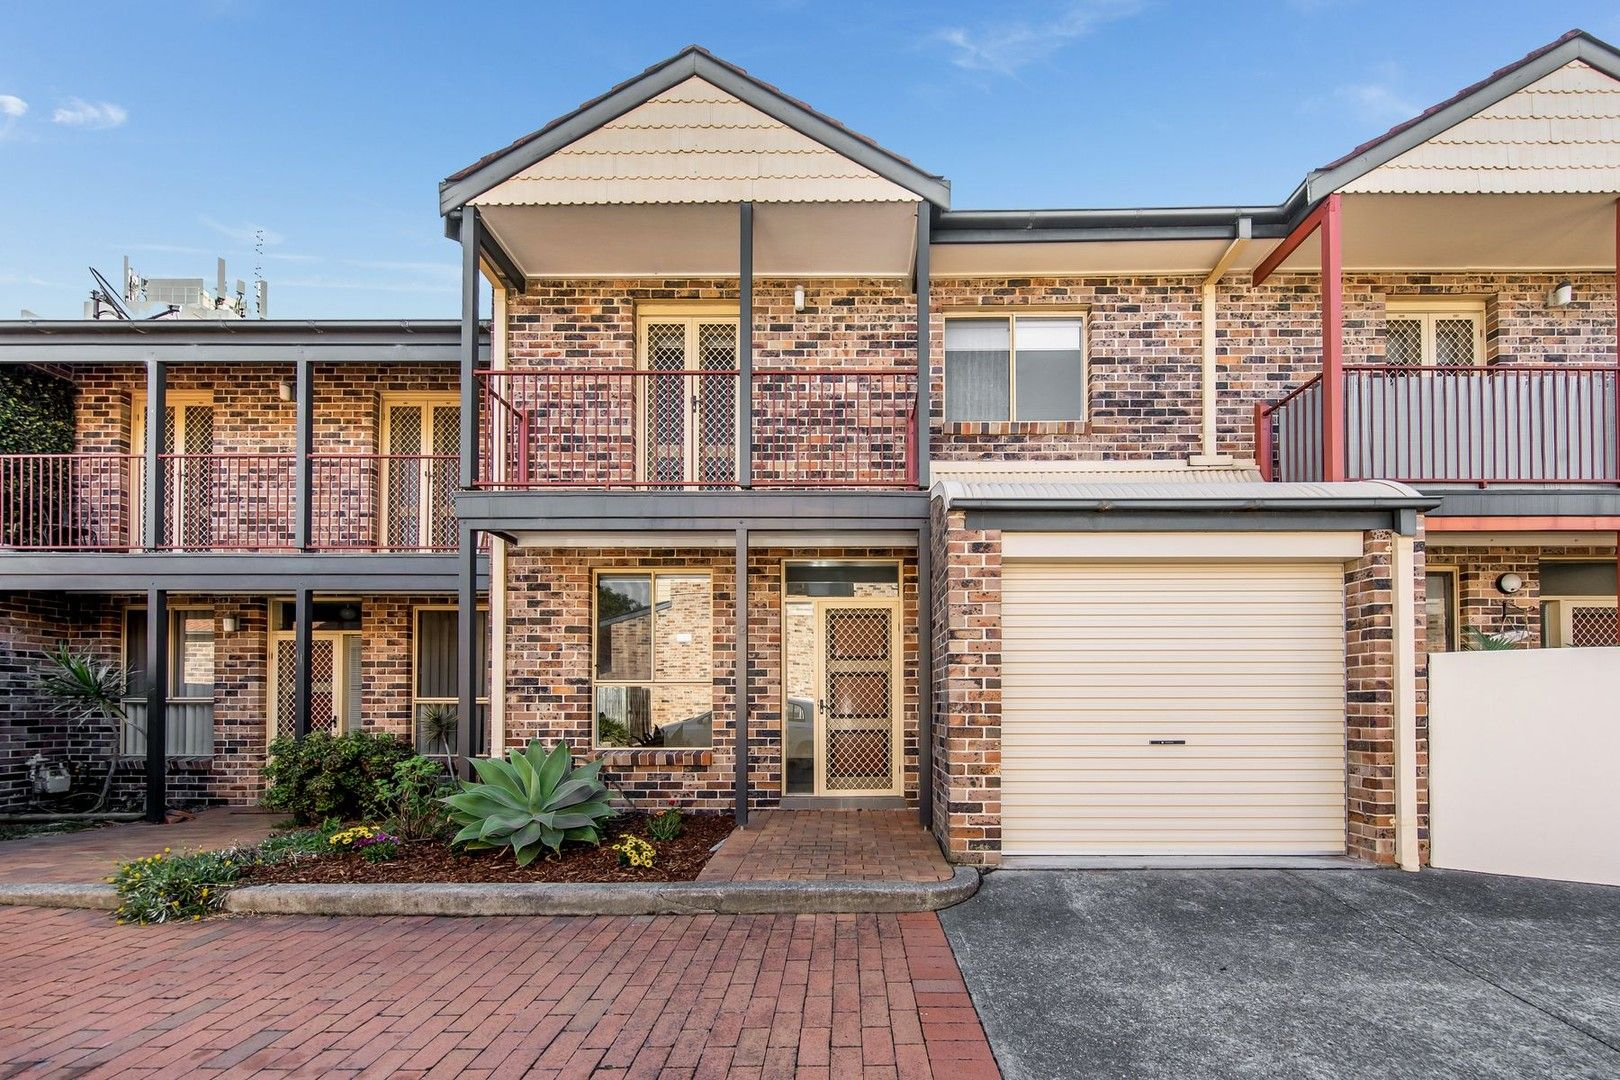 12/54 Corlette Street, Cooks Hill NSW 2300, Image 0